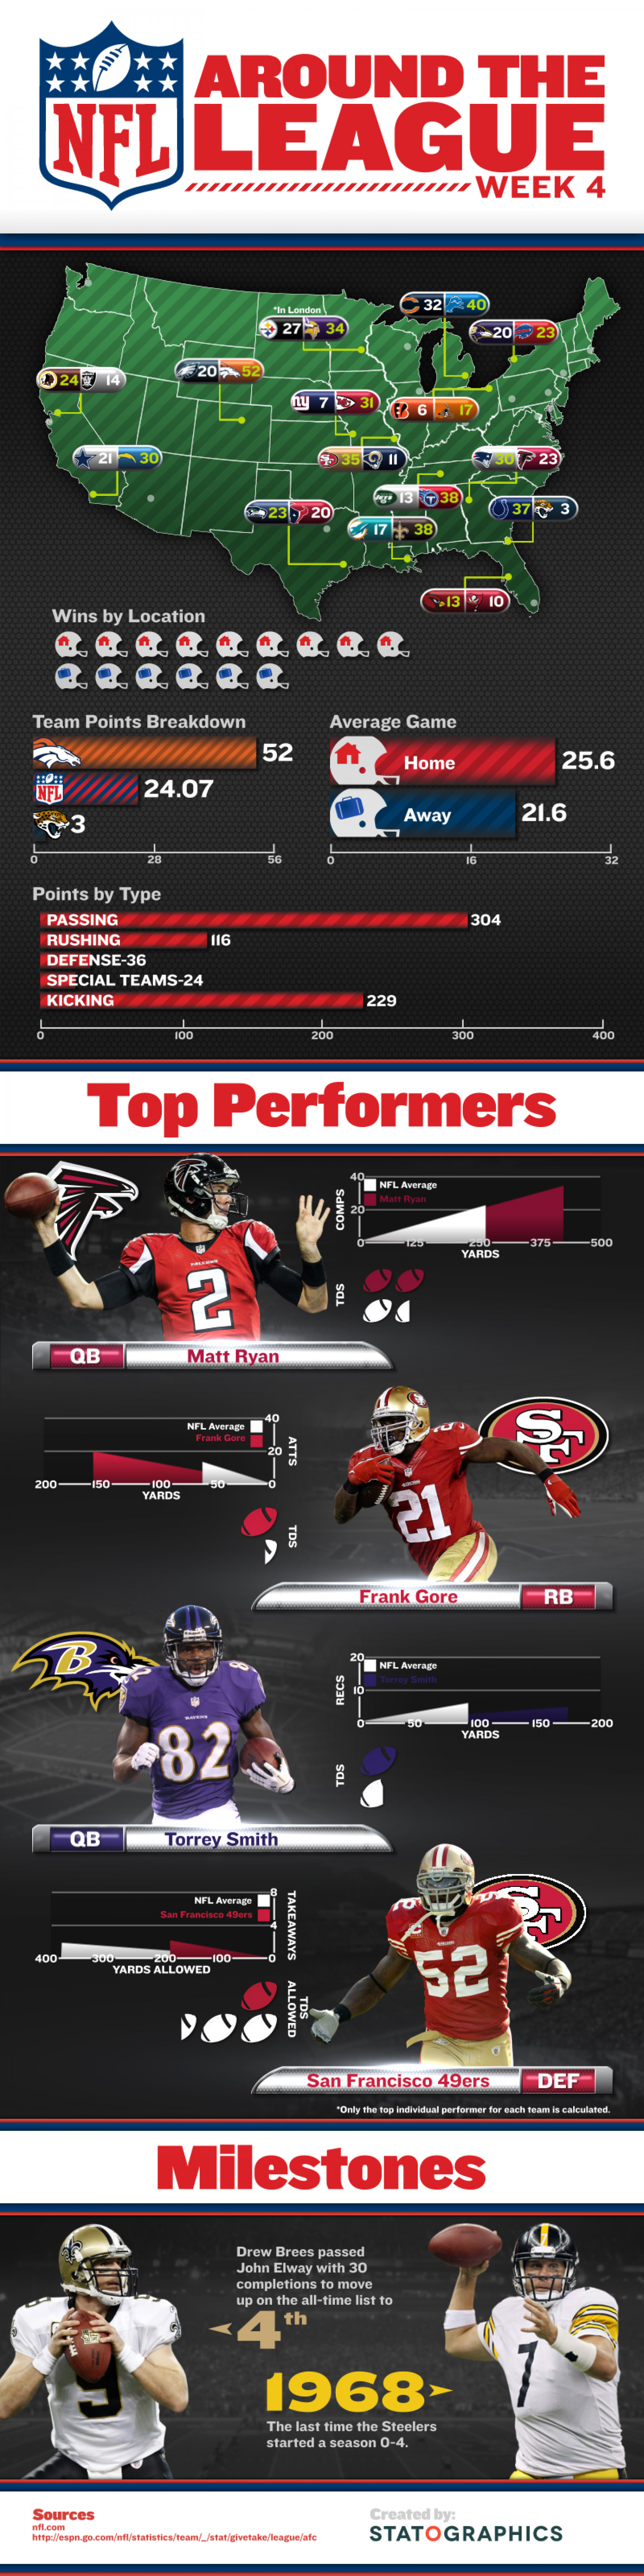 NFL Around the League Week 4 Infographic